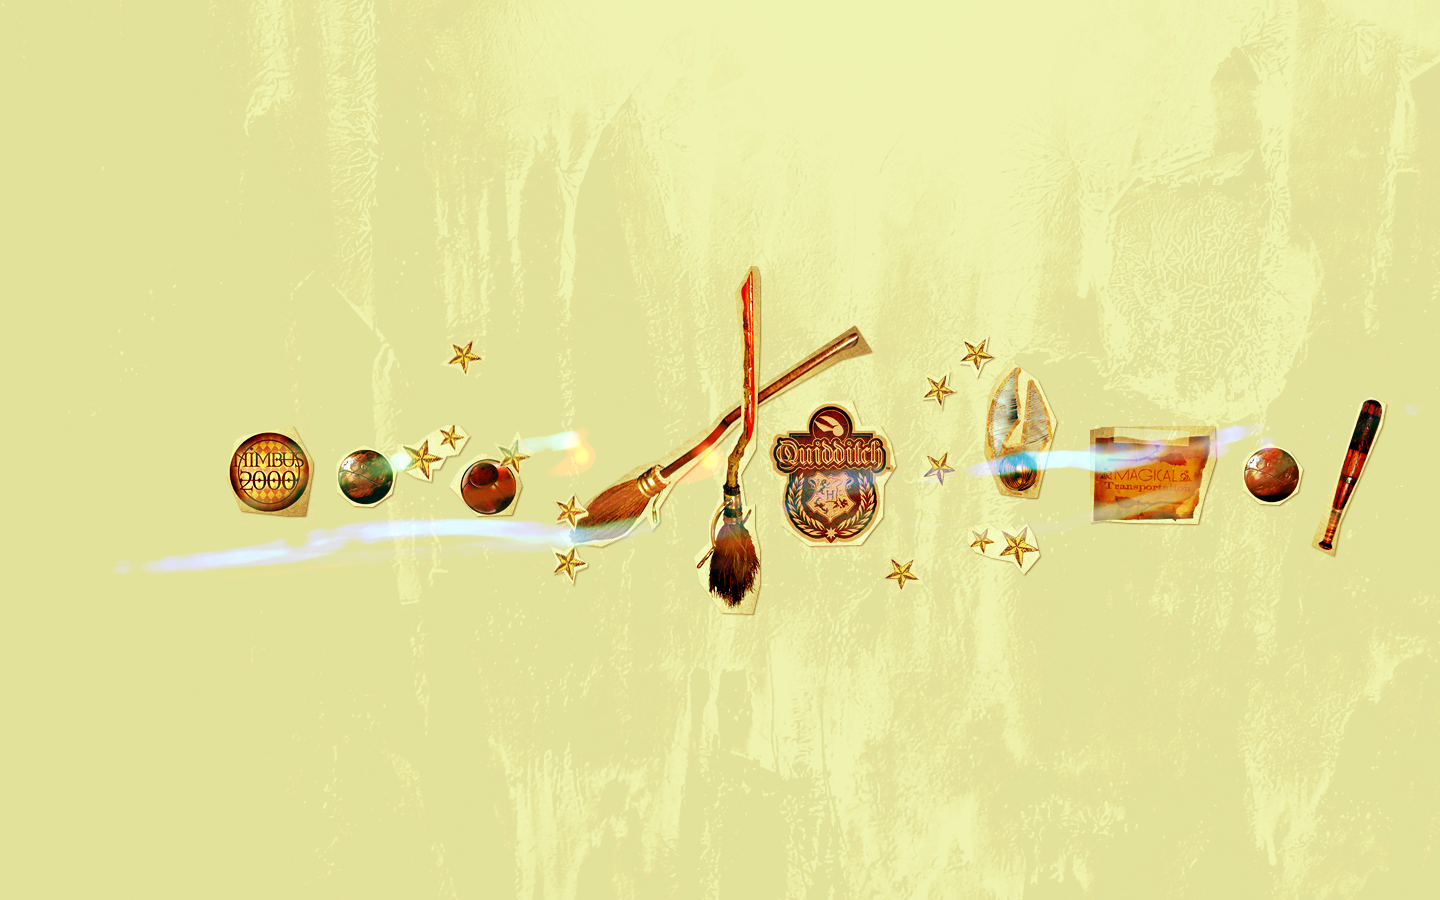 Quidditch Wallpaper by peppermintfrogs on DeviantArt